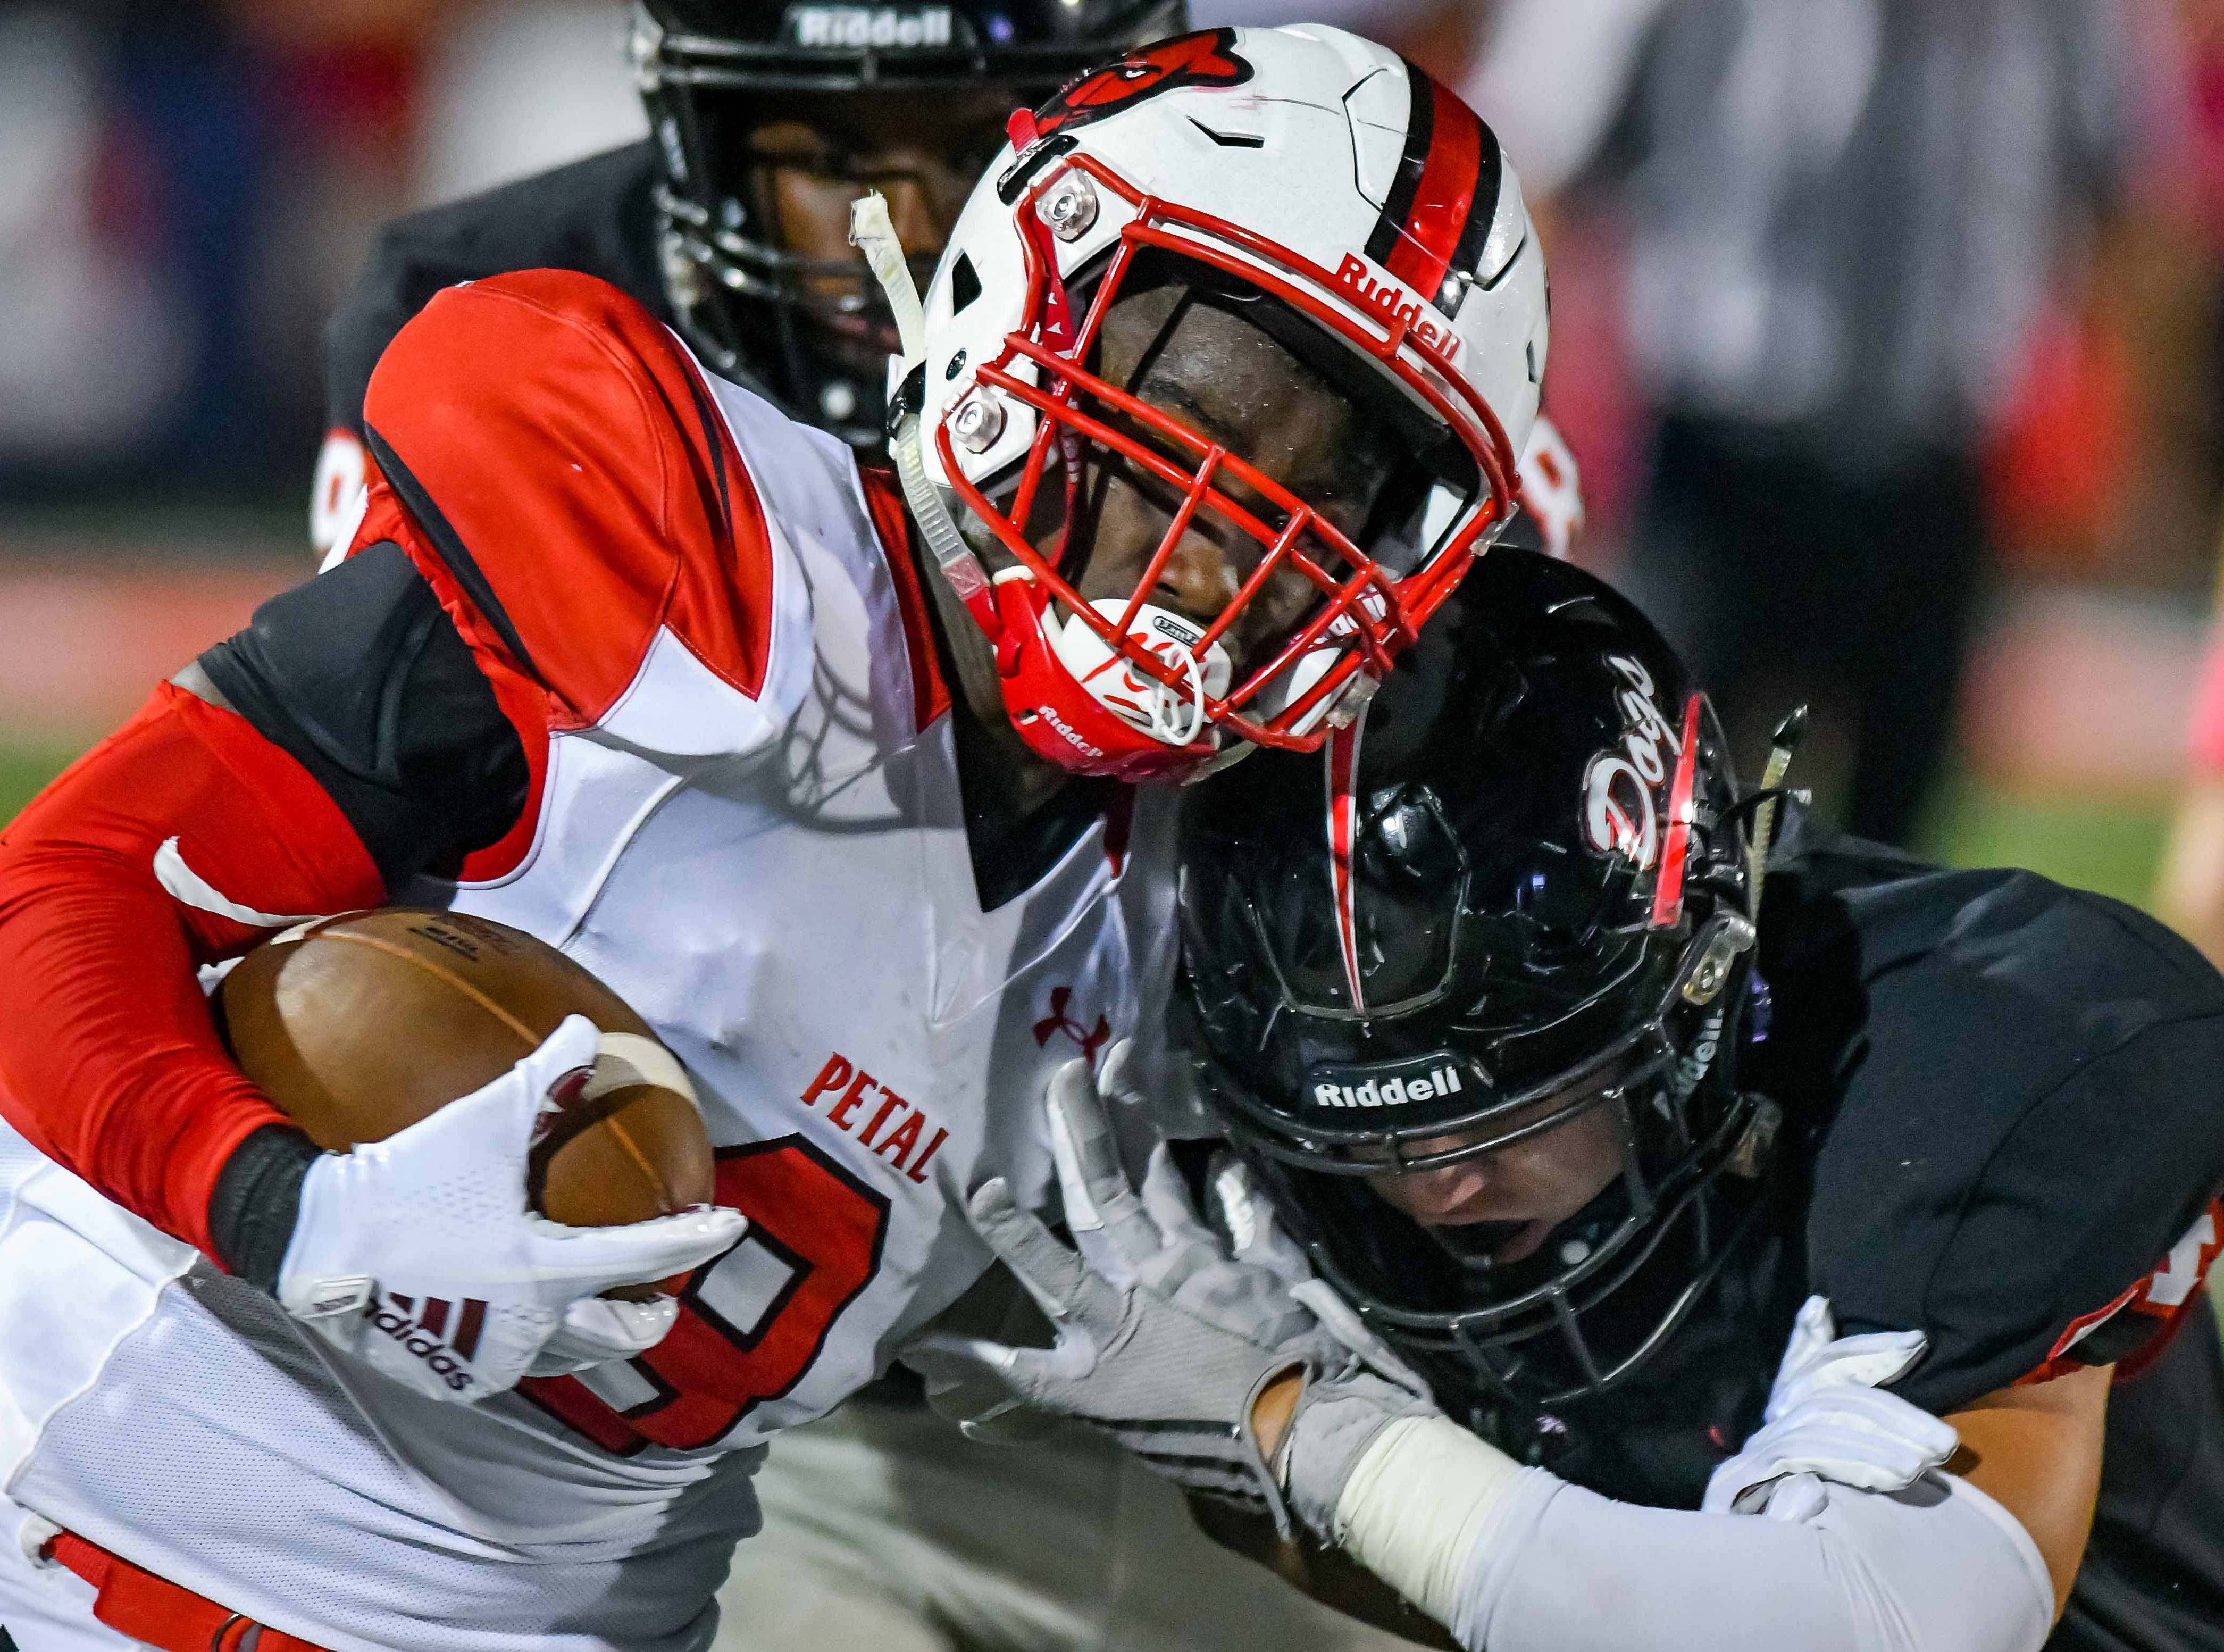 Petal's Micah McGowan (8) collides with a Brandon defender during game action held Friday October 5, 2018 in Brandon, Mississippi.(Photo/Bob Smith-For the Clarion Ledger)